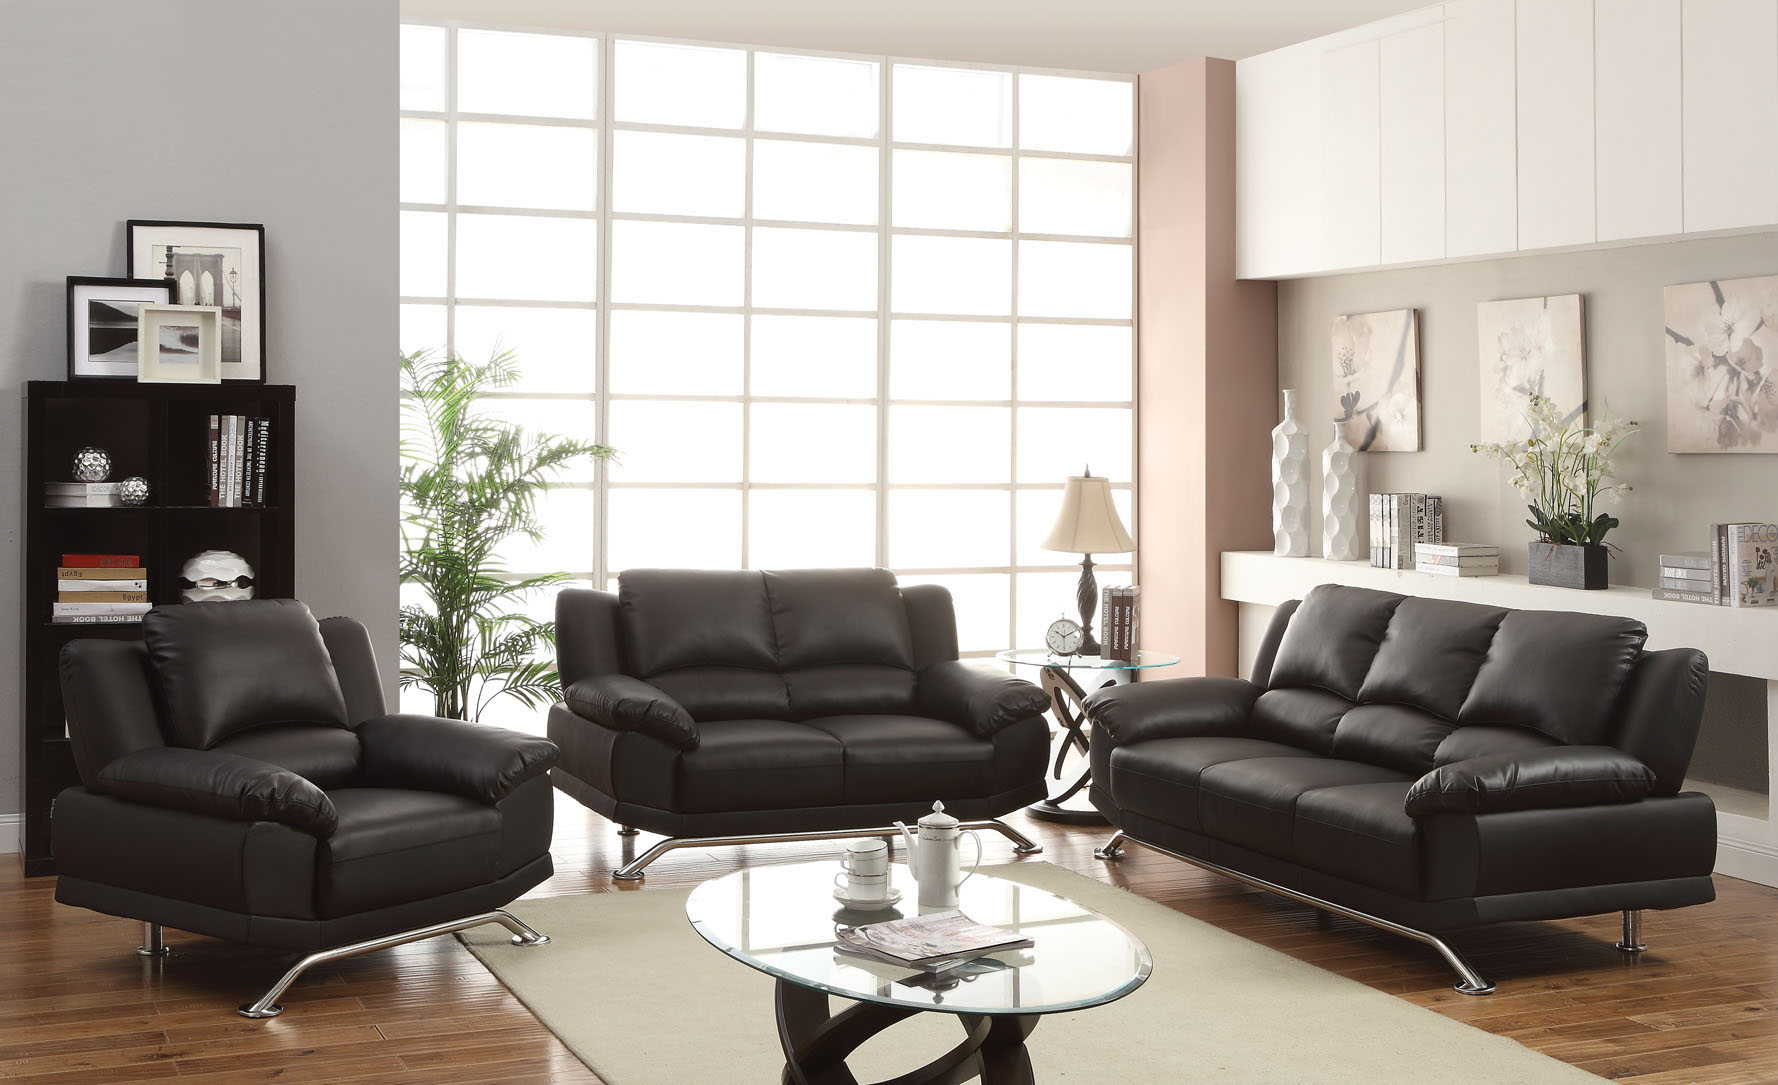 Best Maigan Sofa Set Acme Furniture Home Gallery Stores 400 x 300